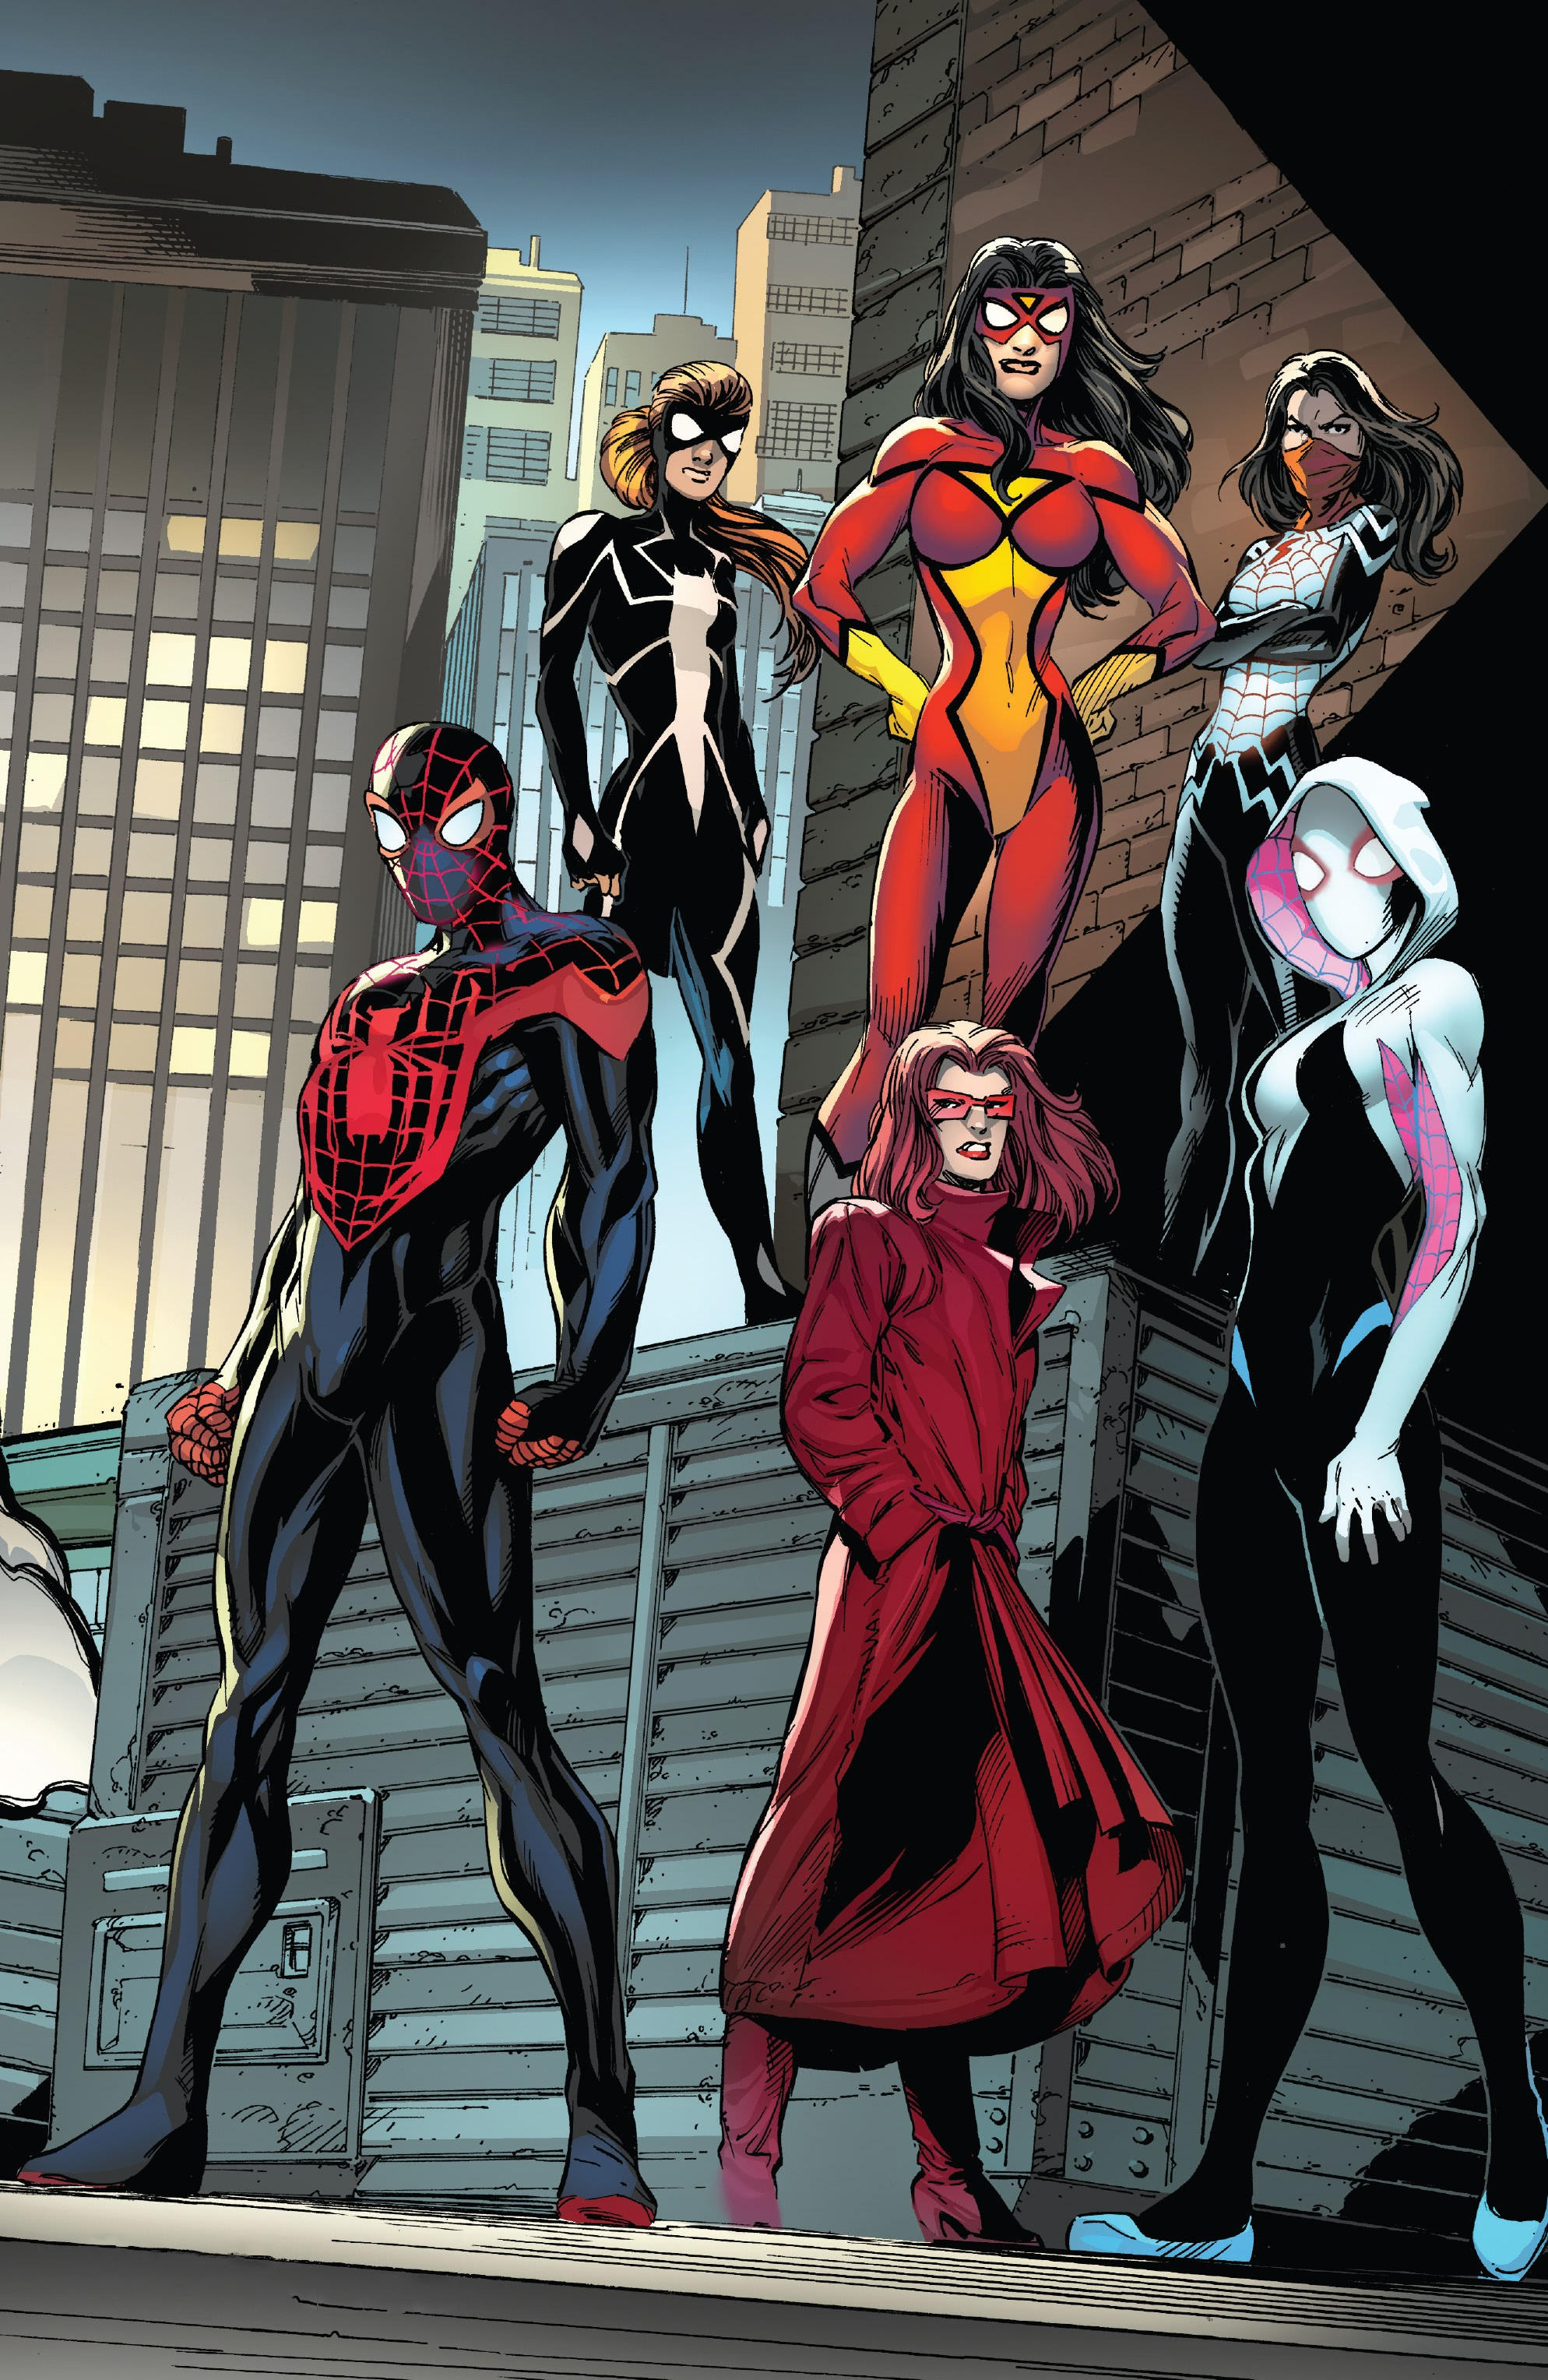 Order of the Web (Earth-616)/Gallery